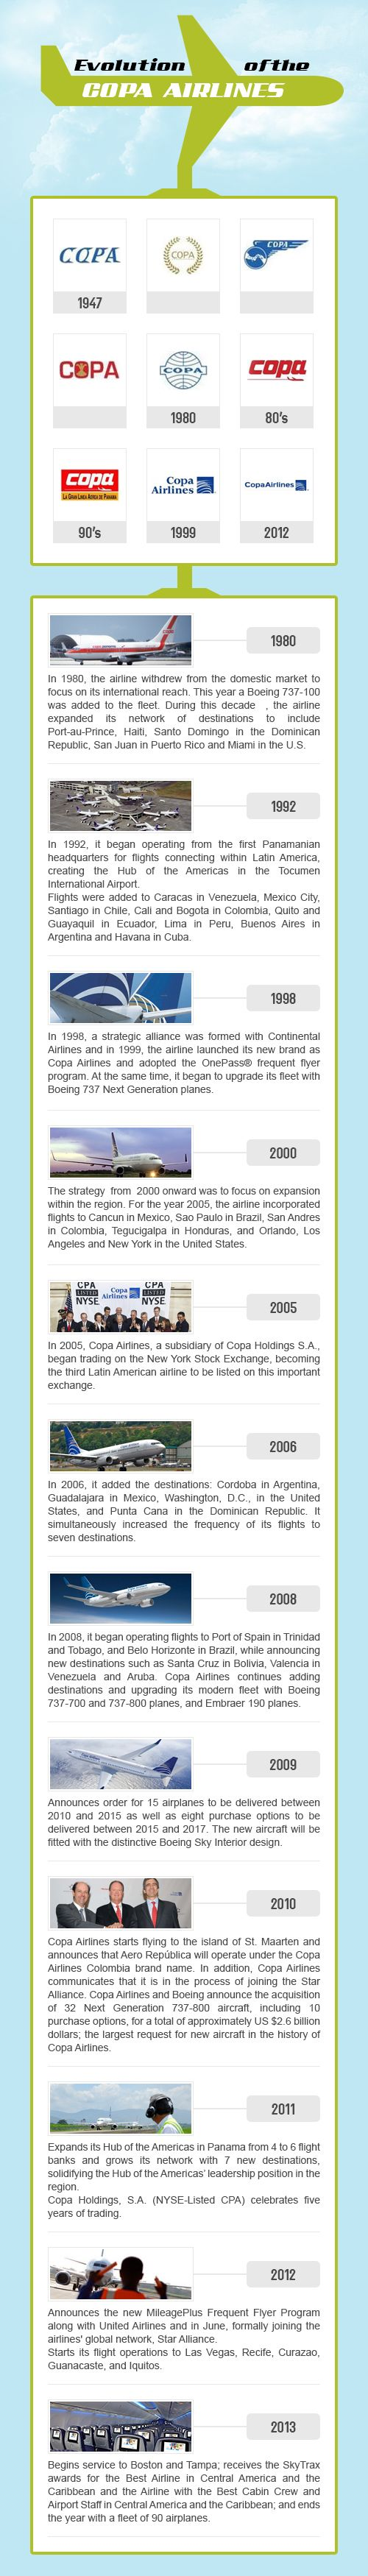 Copa Airlines was founded in 1947 as the national airline of Panama. It is all about the evolution of Copa Airlines logo since 1947 and the milestones achieved by the cheapest airline in Central America and South America.